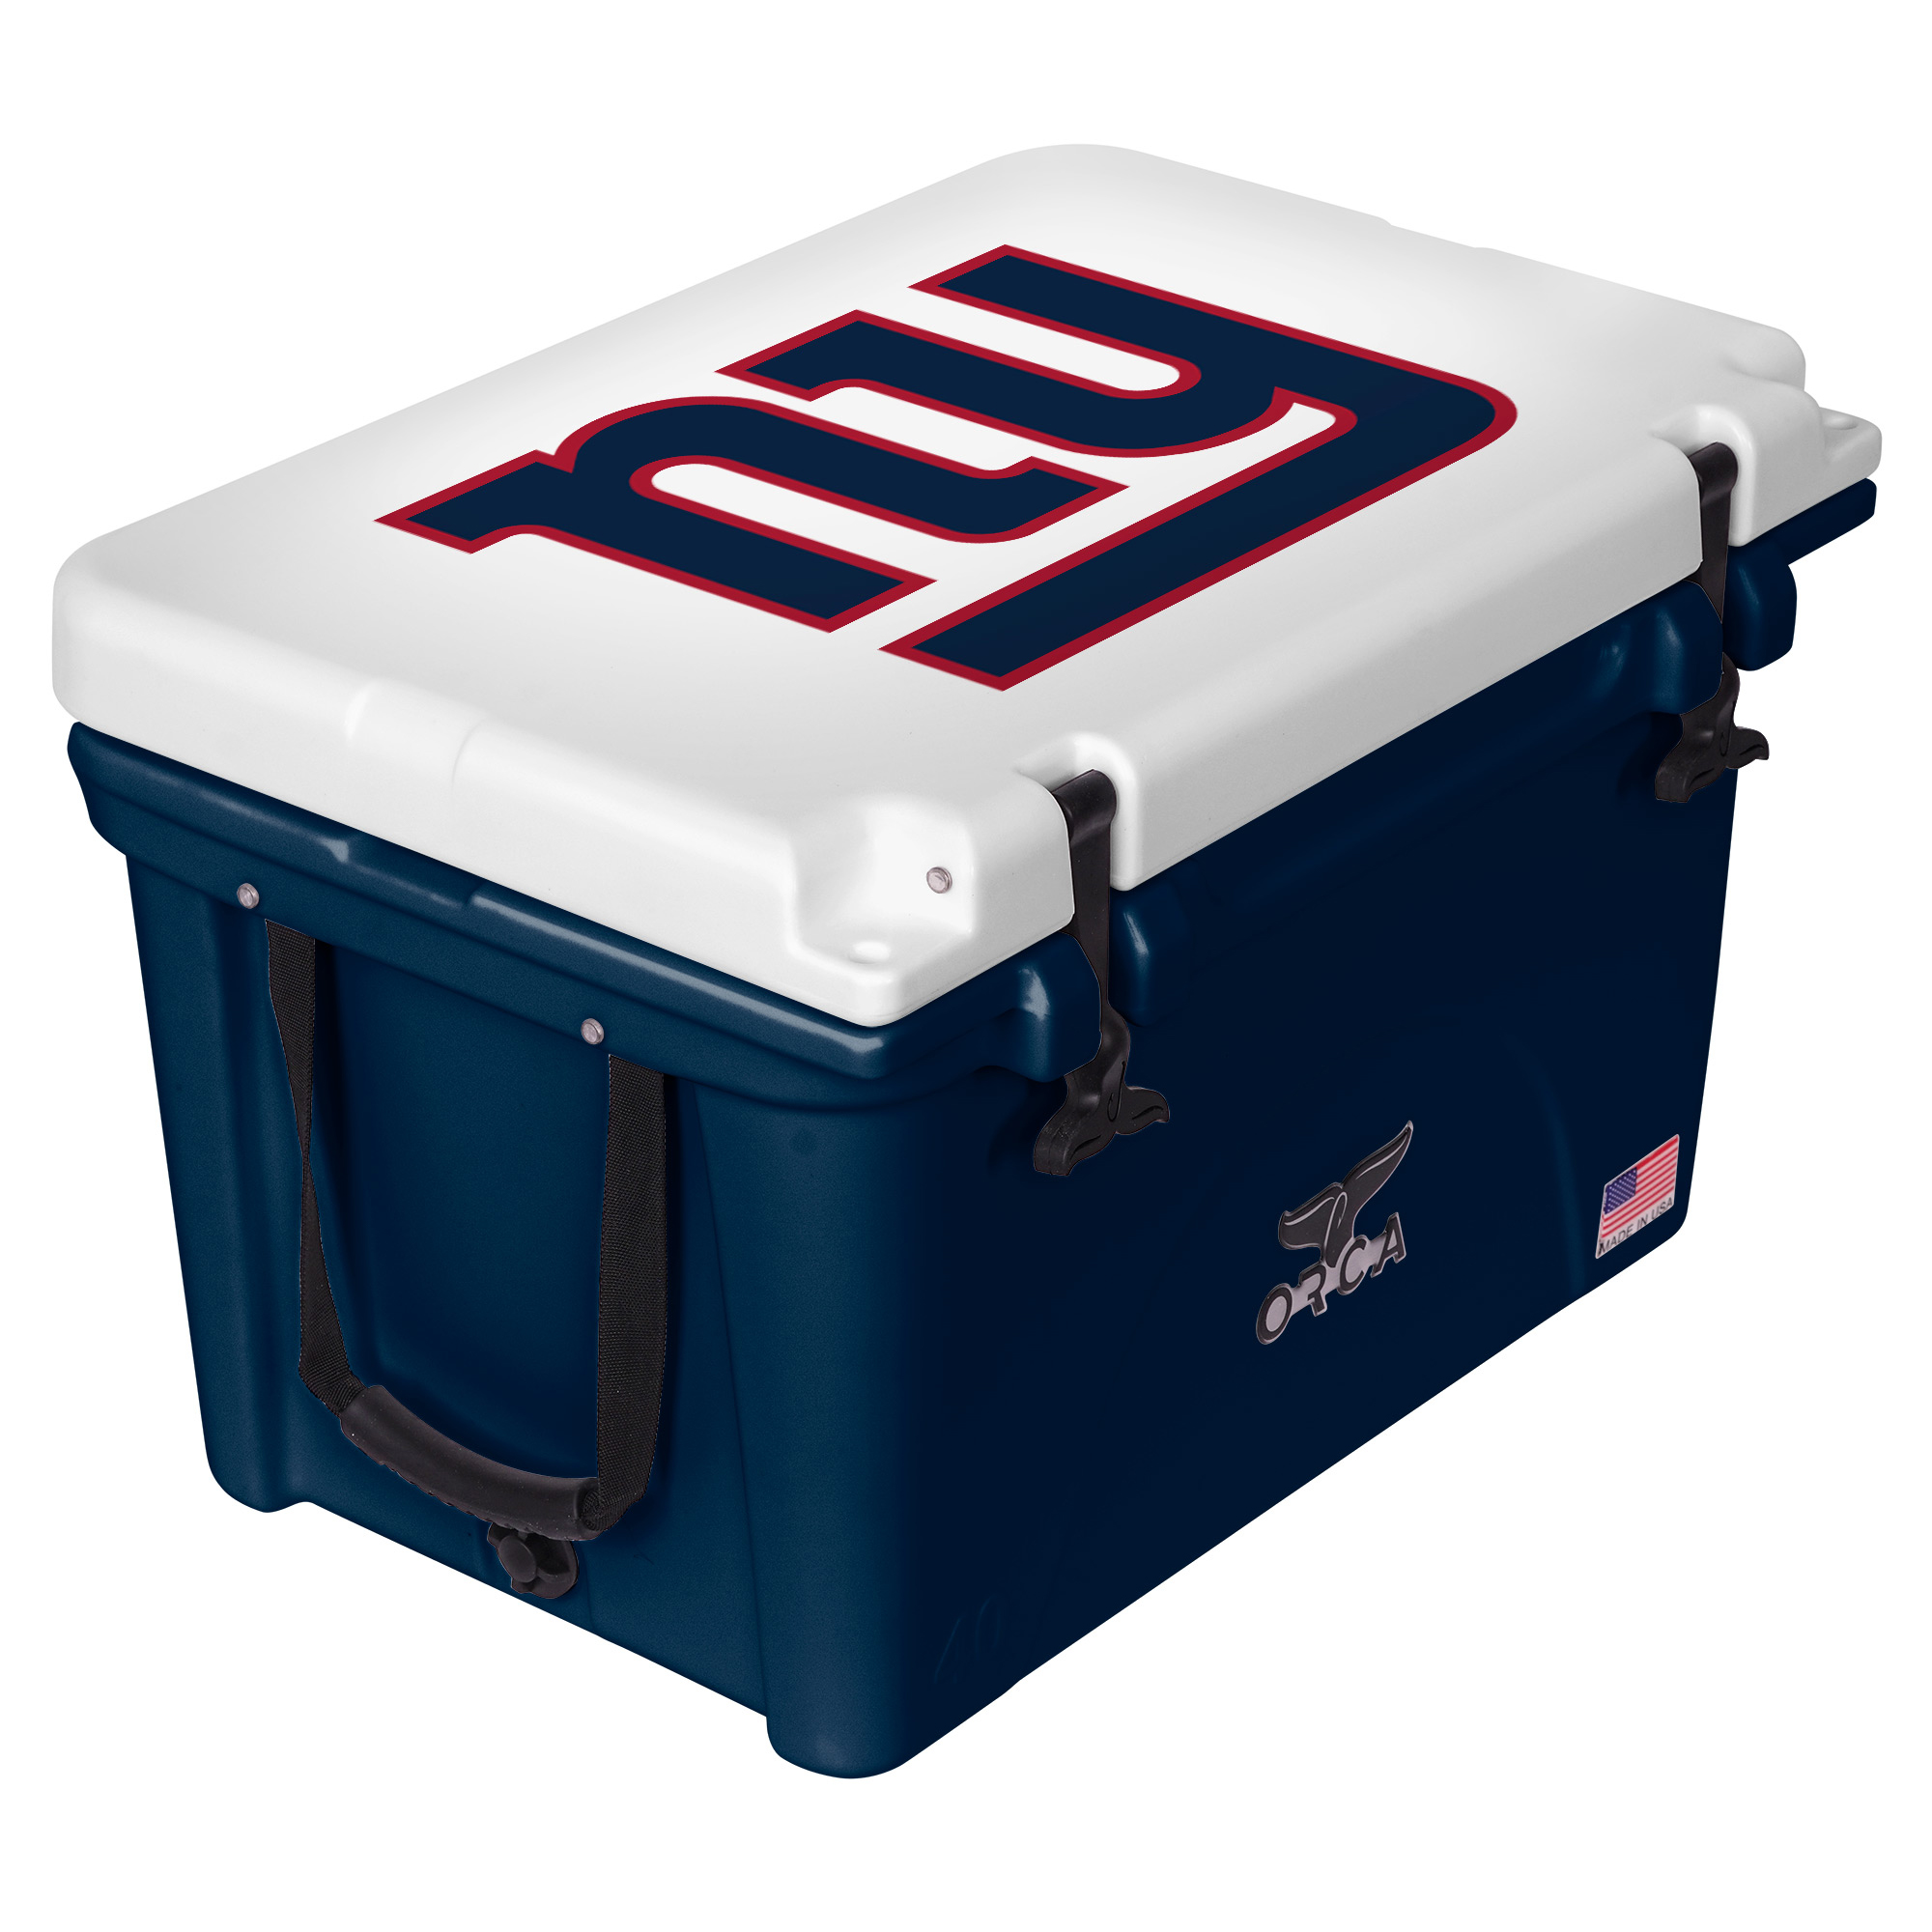 New York Giants ORCA 40-Quart Hard-Sided Cooler - Blue/White - No Size